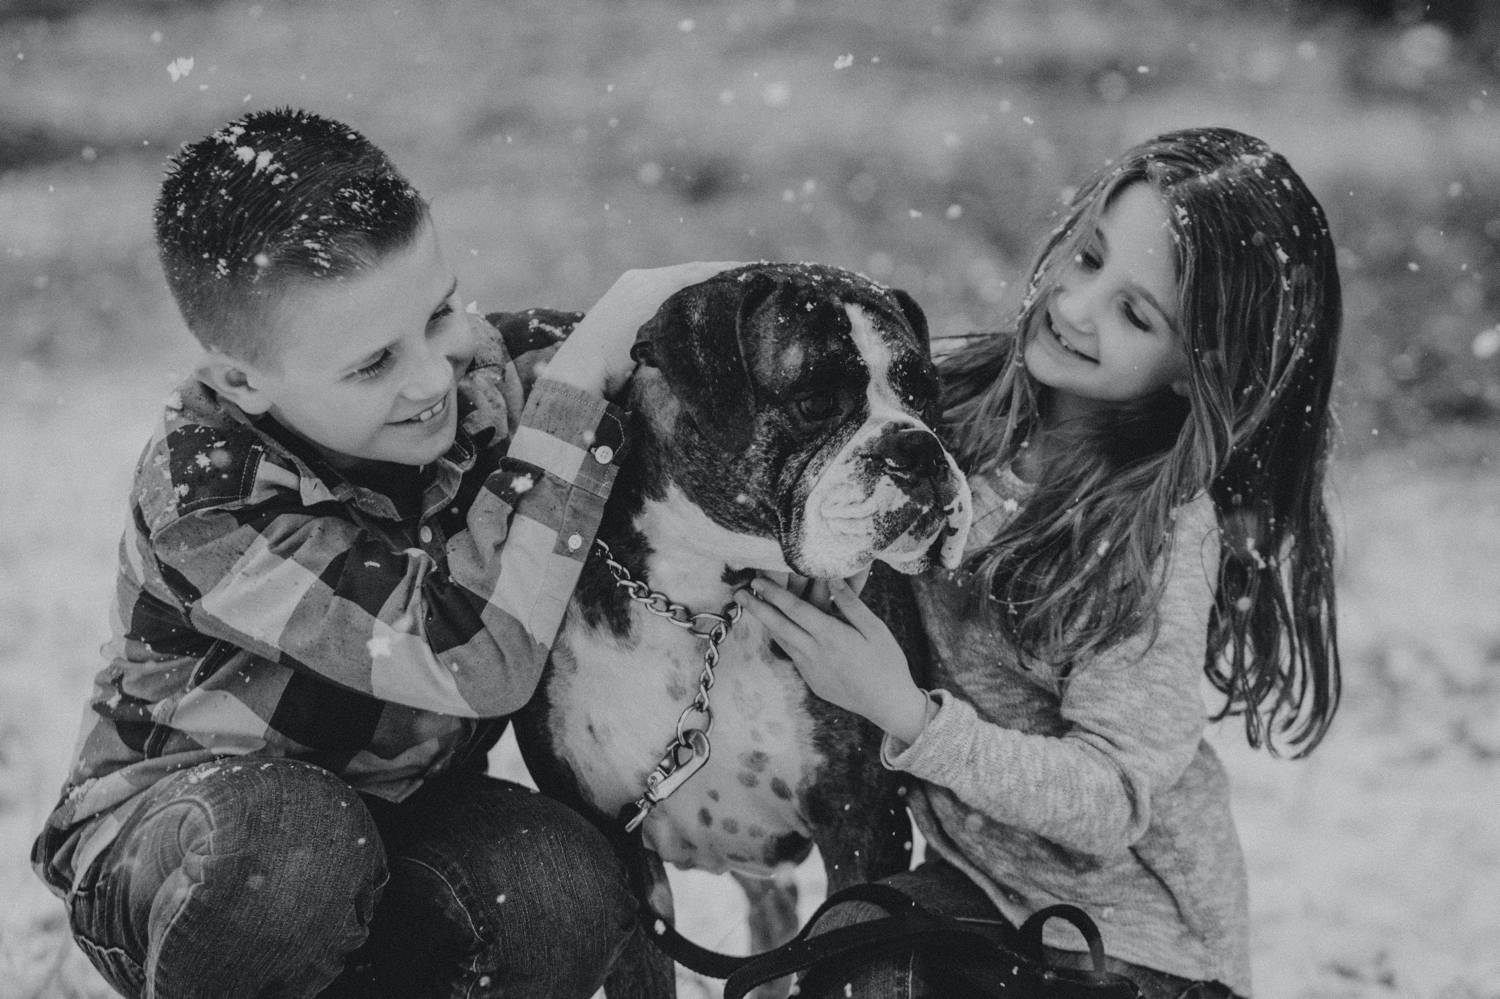 In this black and white photo by Nicole Nero Studio, a young boy and young girl kneel in falling snow with their Boxer dog between them. Christmas Mini Session: Ideas Families will ADORE!